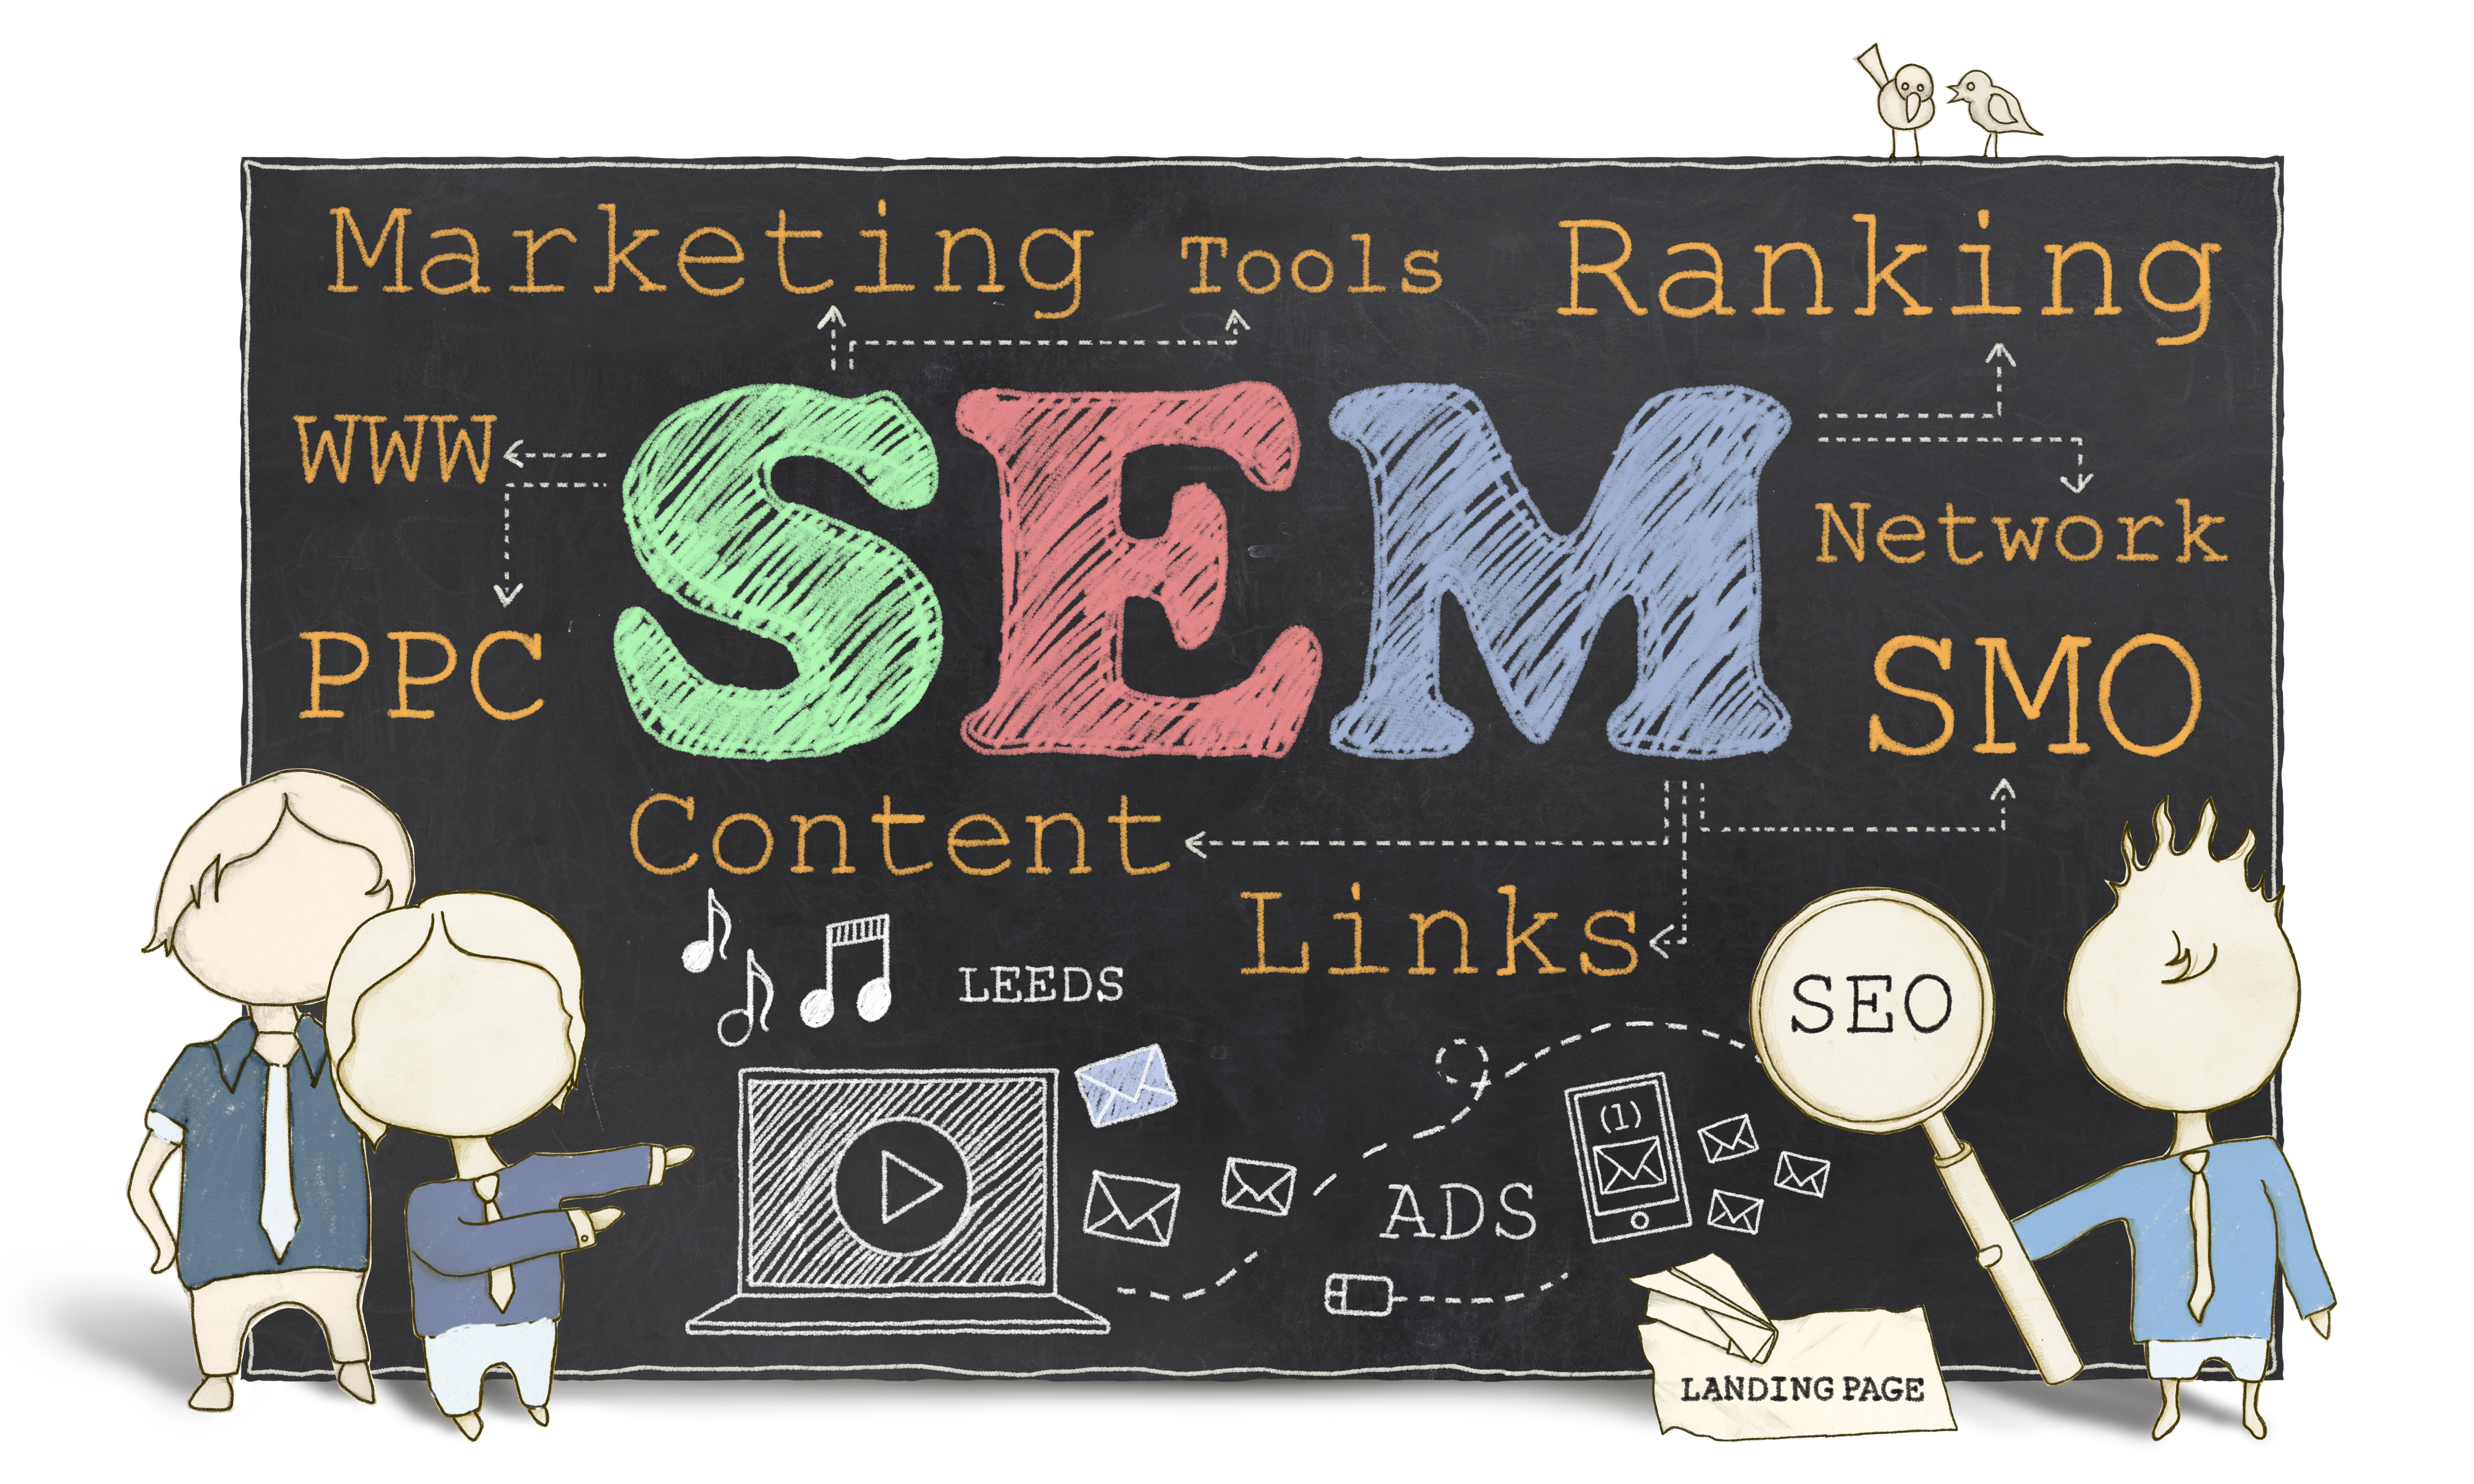 Basic Search Engine Marketing for SMB's